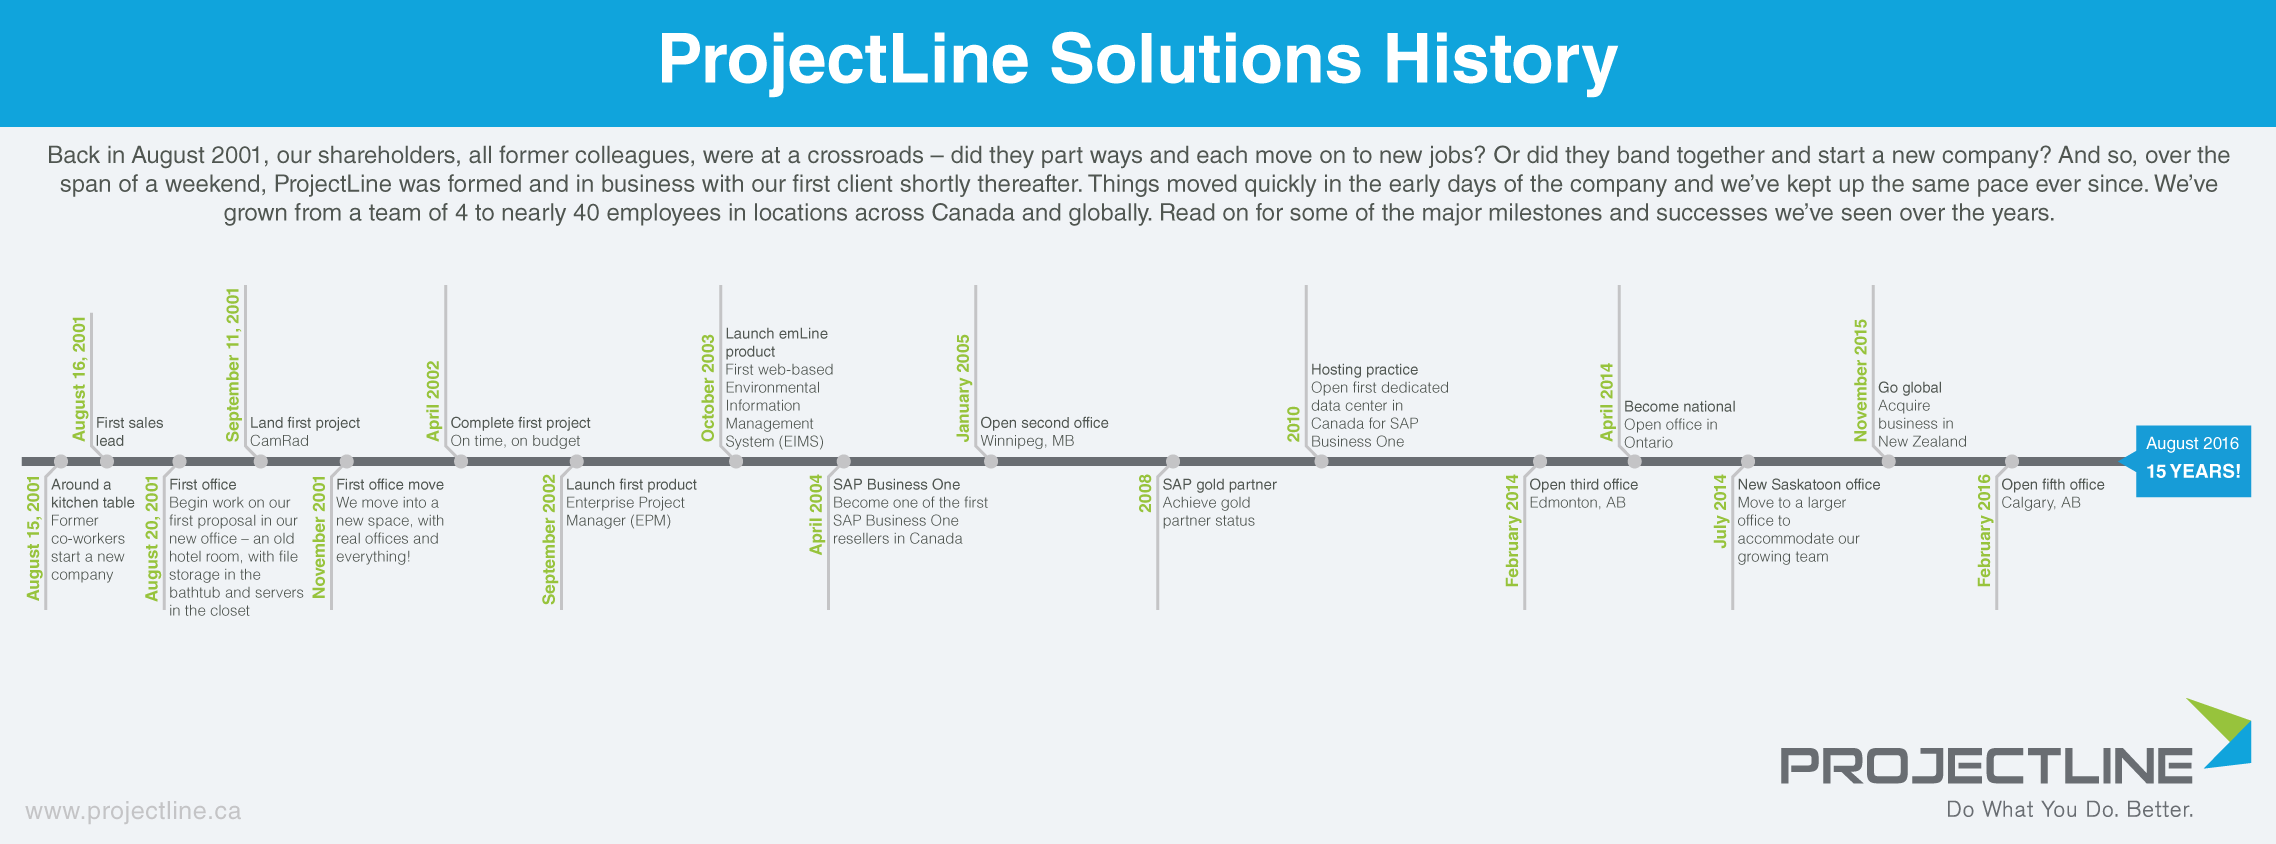 [Infographic] ProjectLine Solutions history